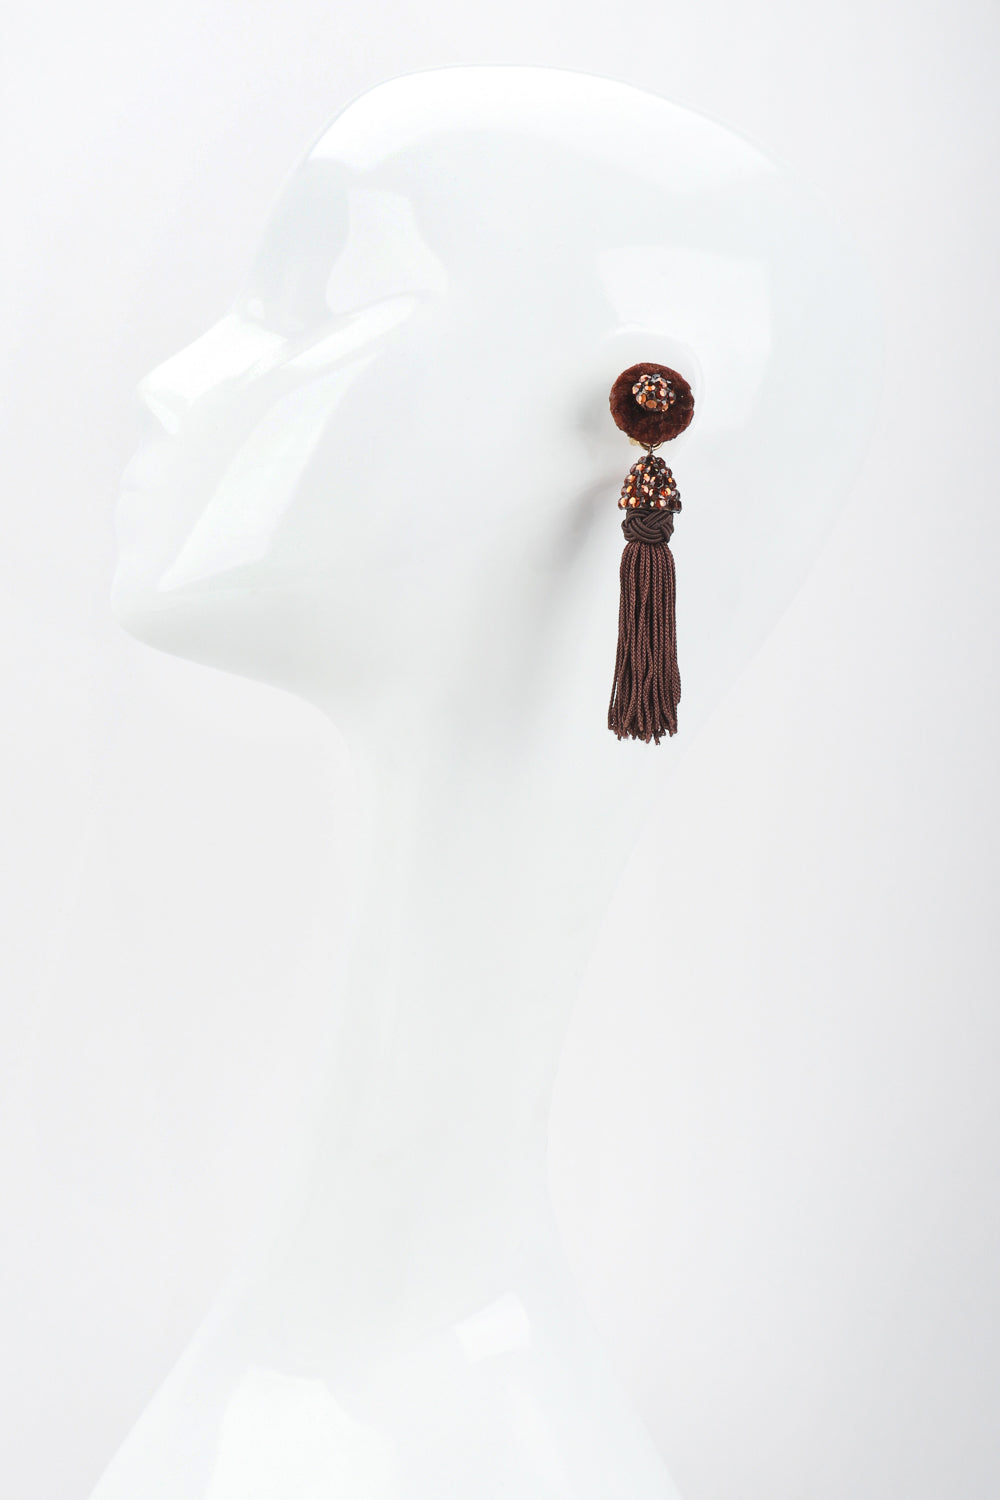 Recess Designer Consignment Vintage Richard Kerr Chocolate Rhinestone Tassel Earrings Los Angeles Resale Recycled